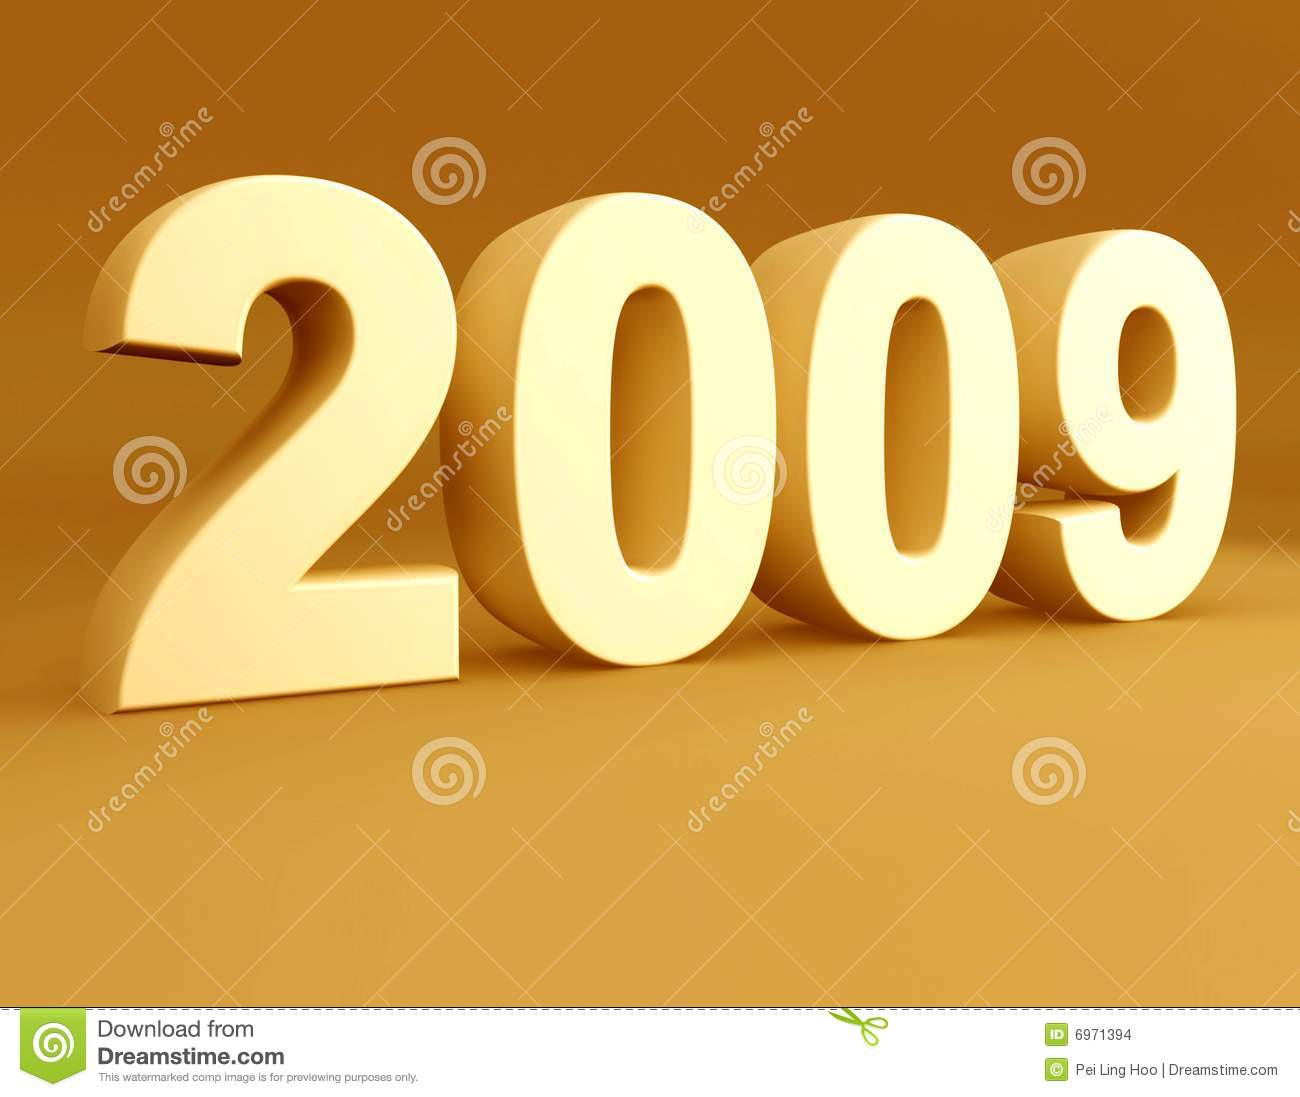 2009: Year 2009 3d Rendered Stock Illustration. Illustration Of